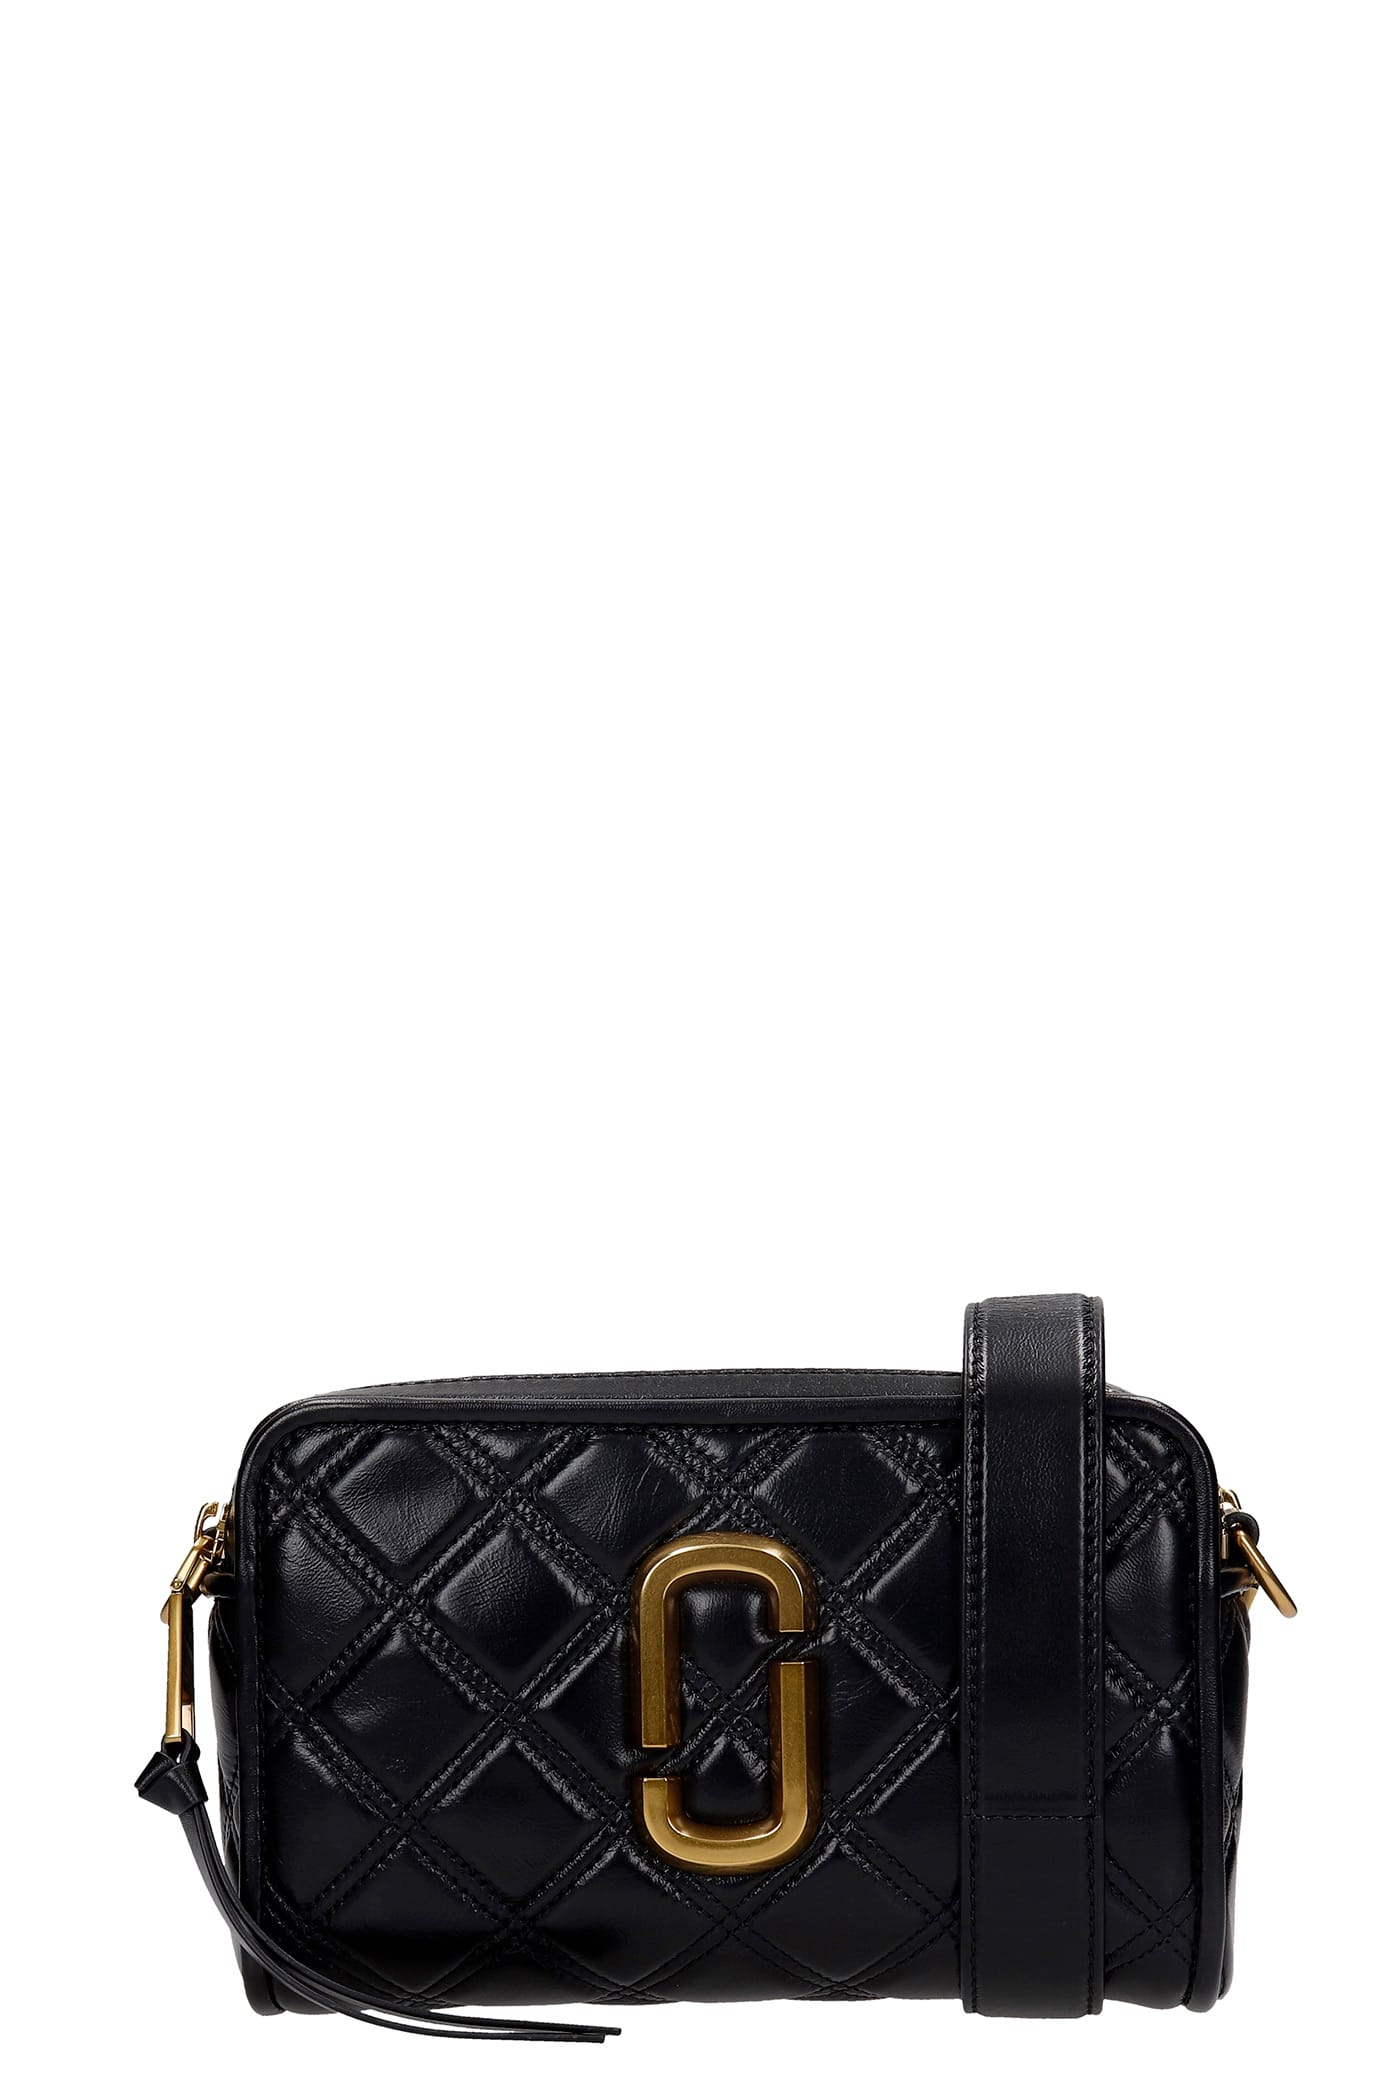 Marc Jacobs Shoulder Bag In Black Leather